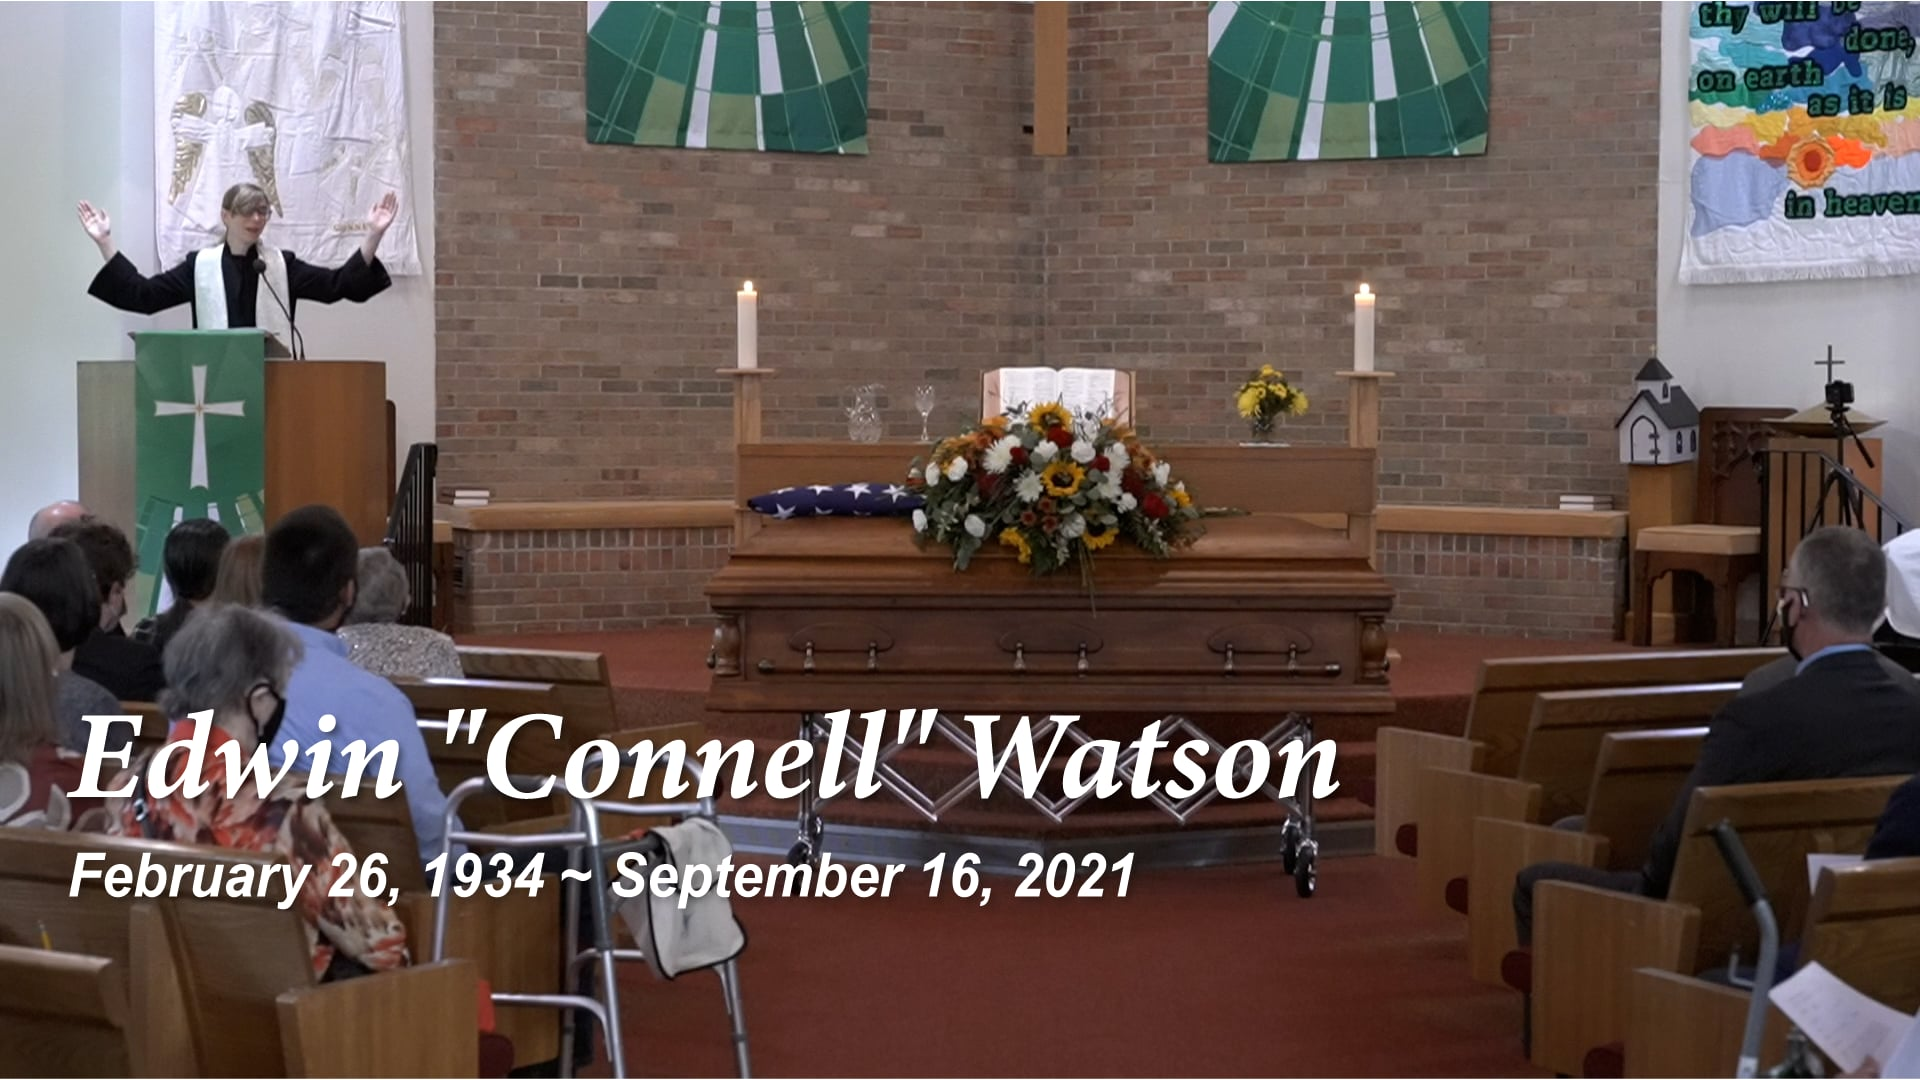 Funeral Service for Edwin (Connell) Watson